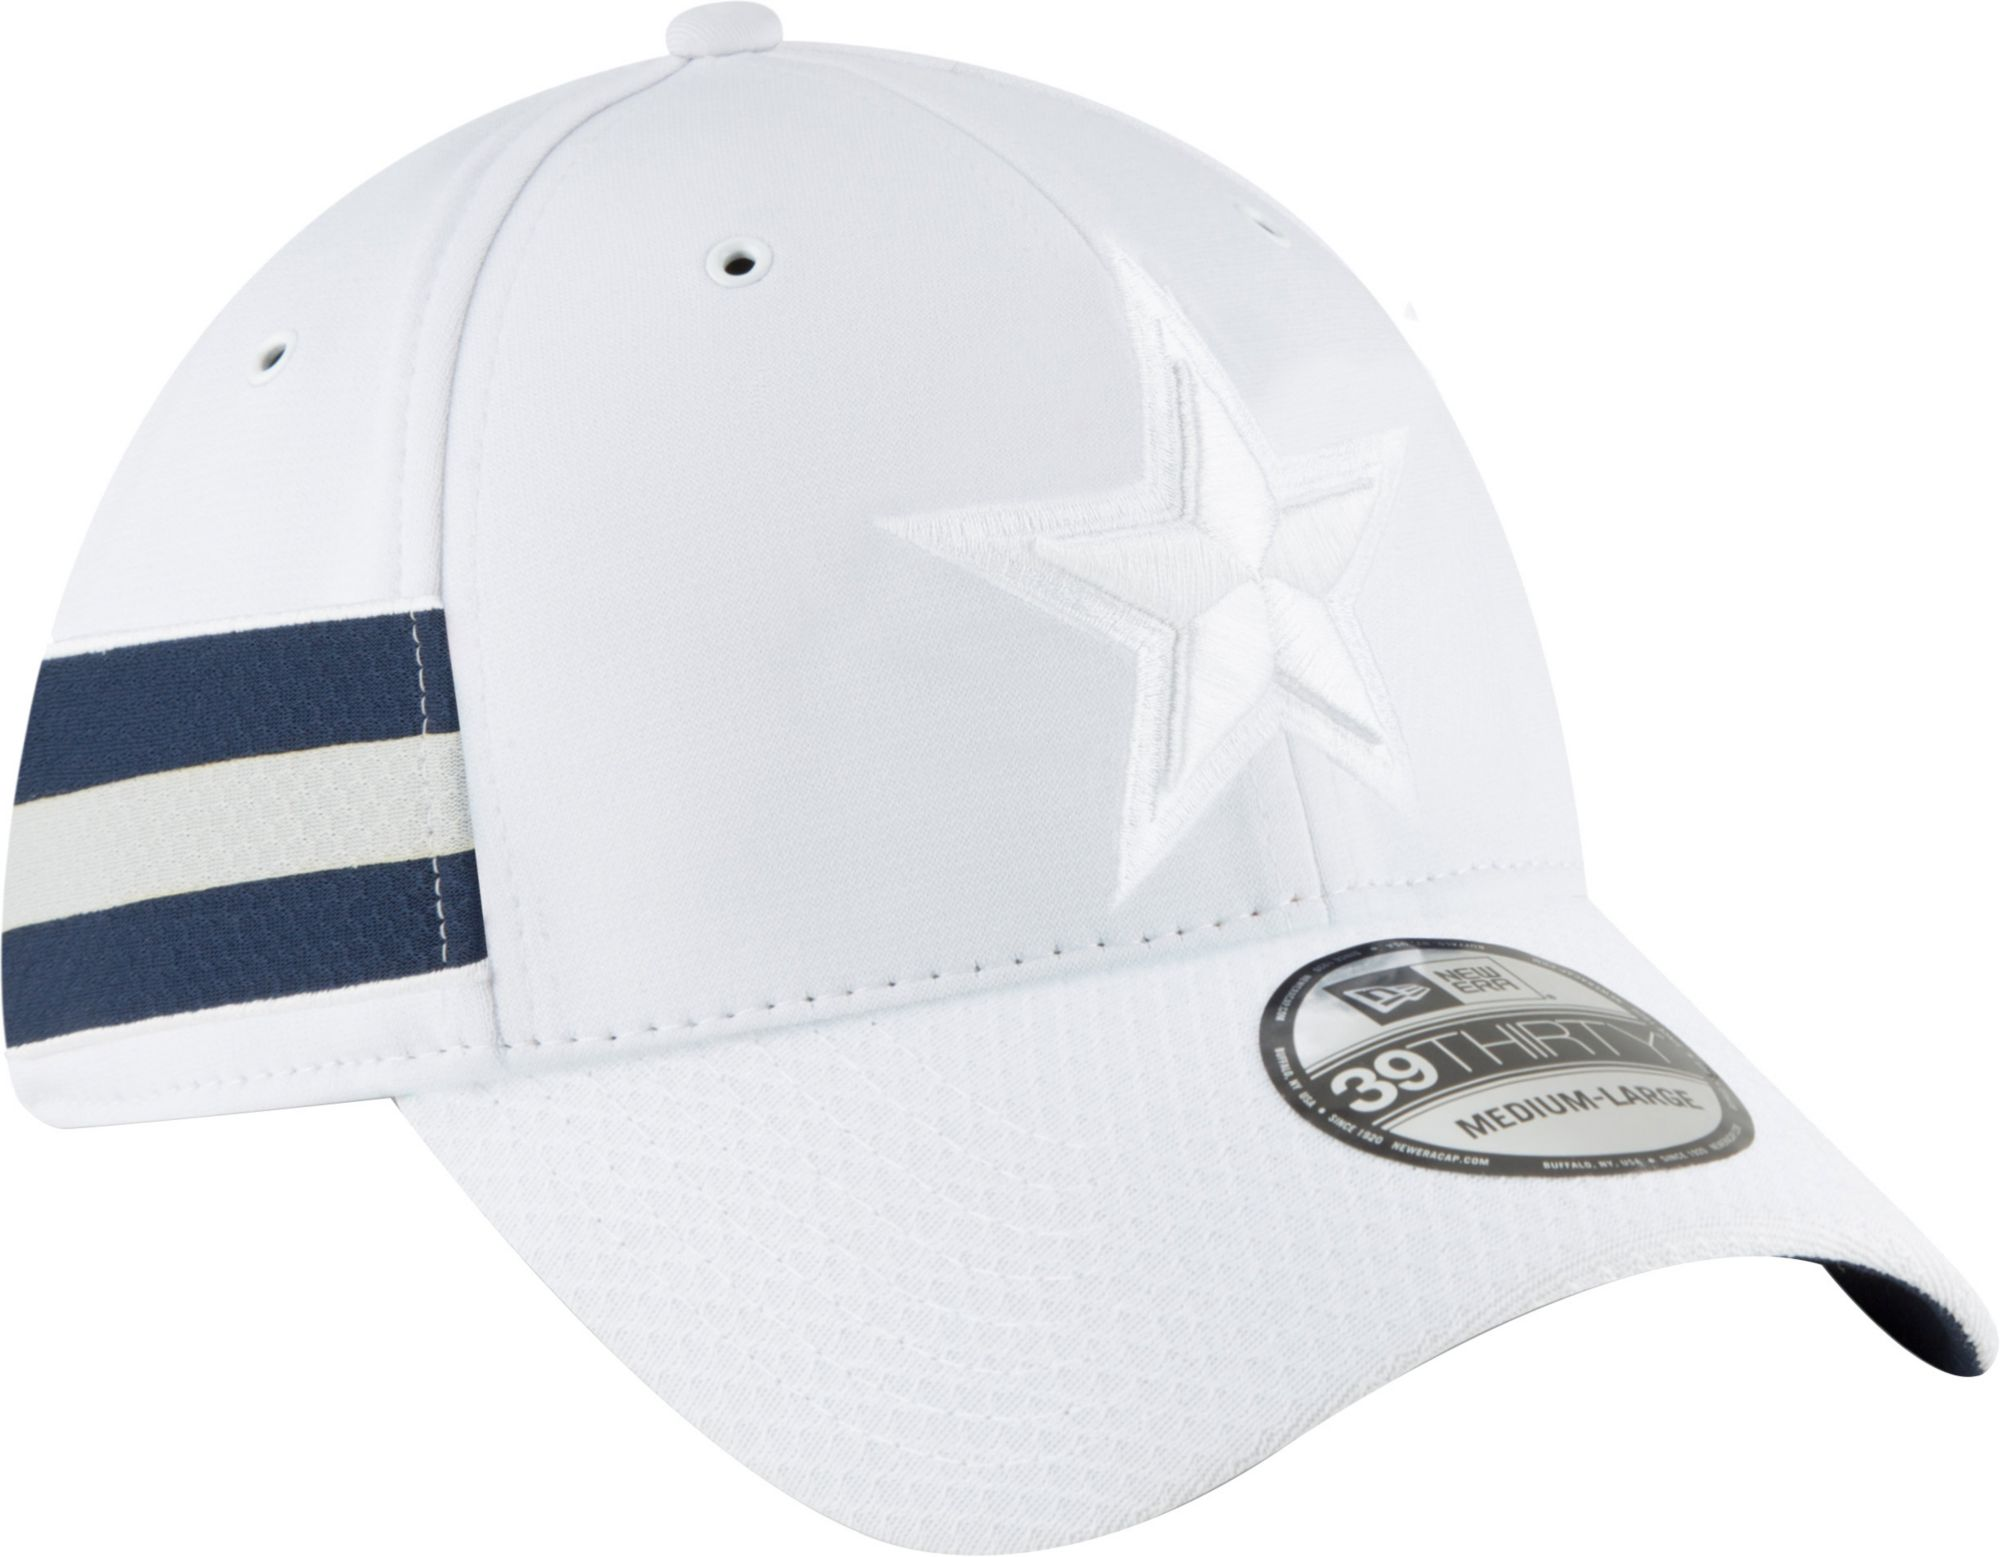 57ac5f4ed82 ... where to buy new era mens dallas cowboys sideline color rush 39thirty  white stretch fit hat